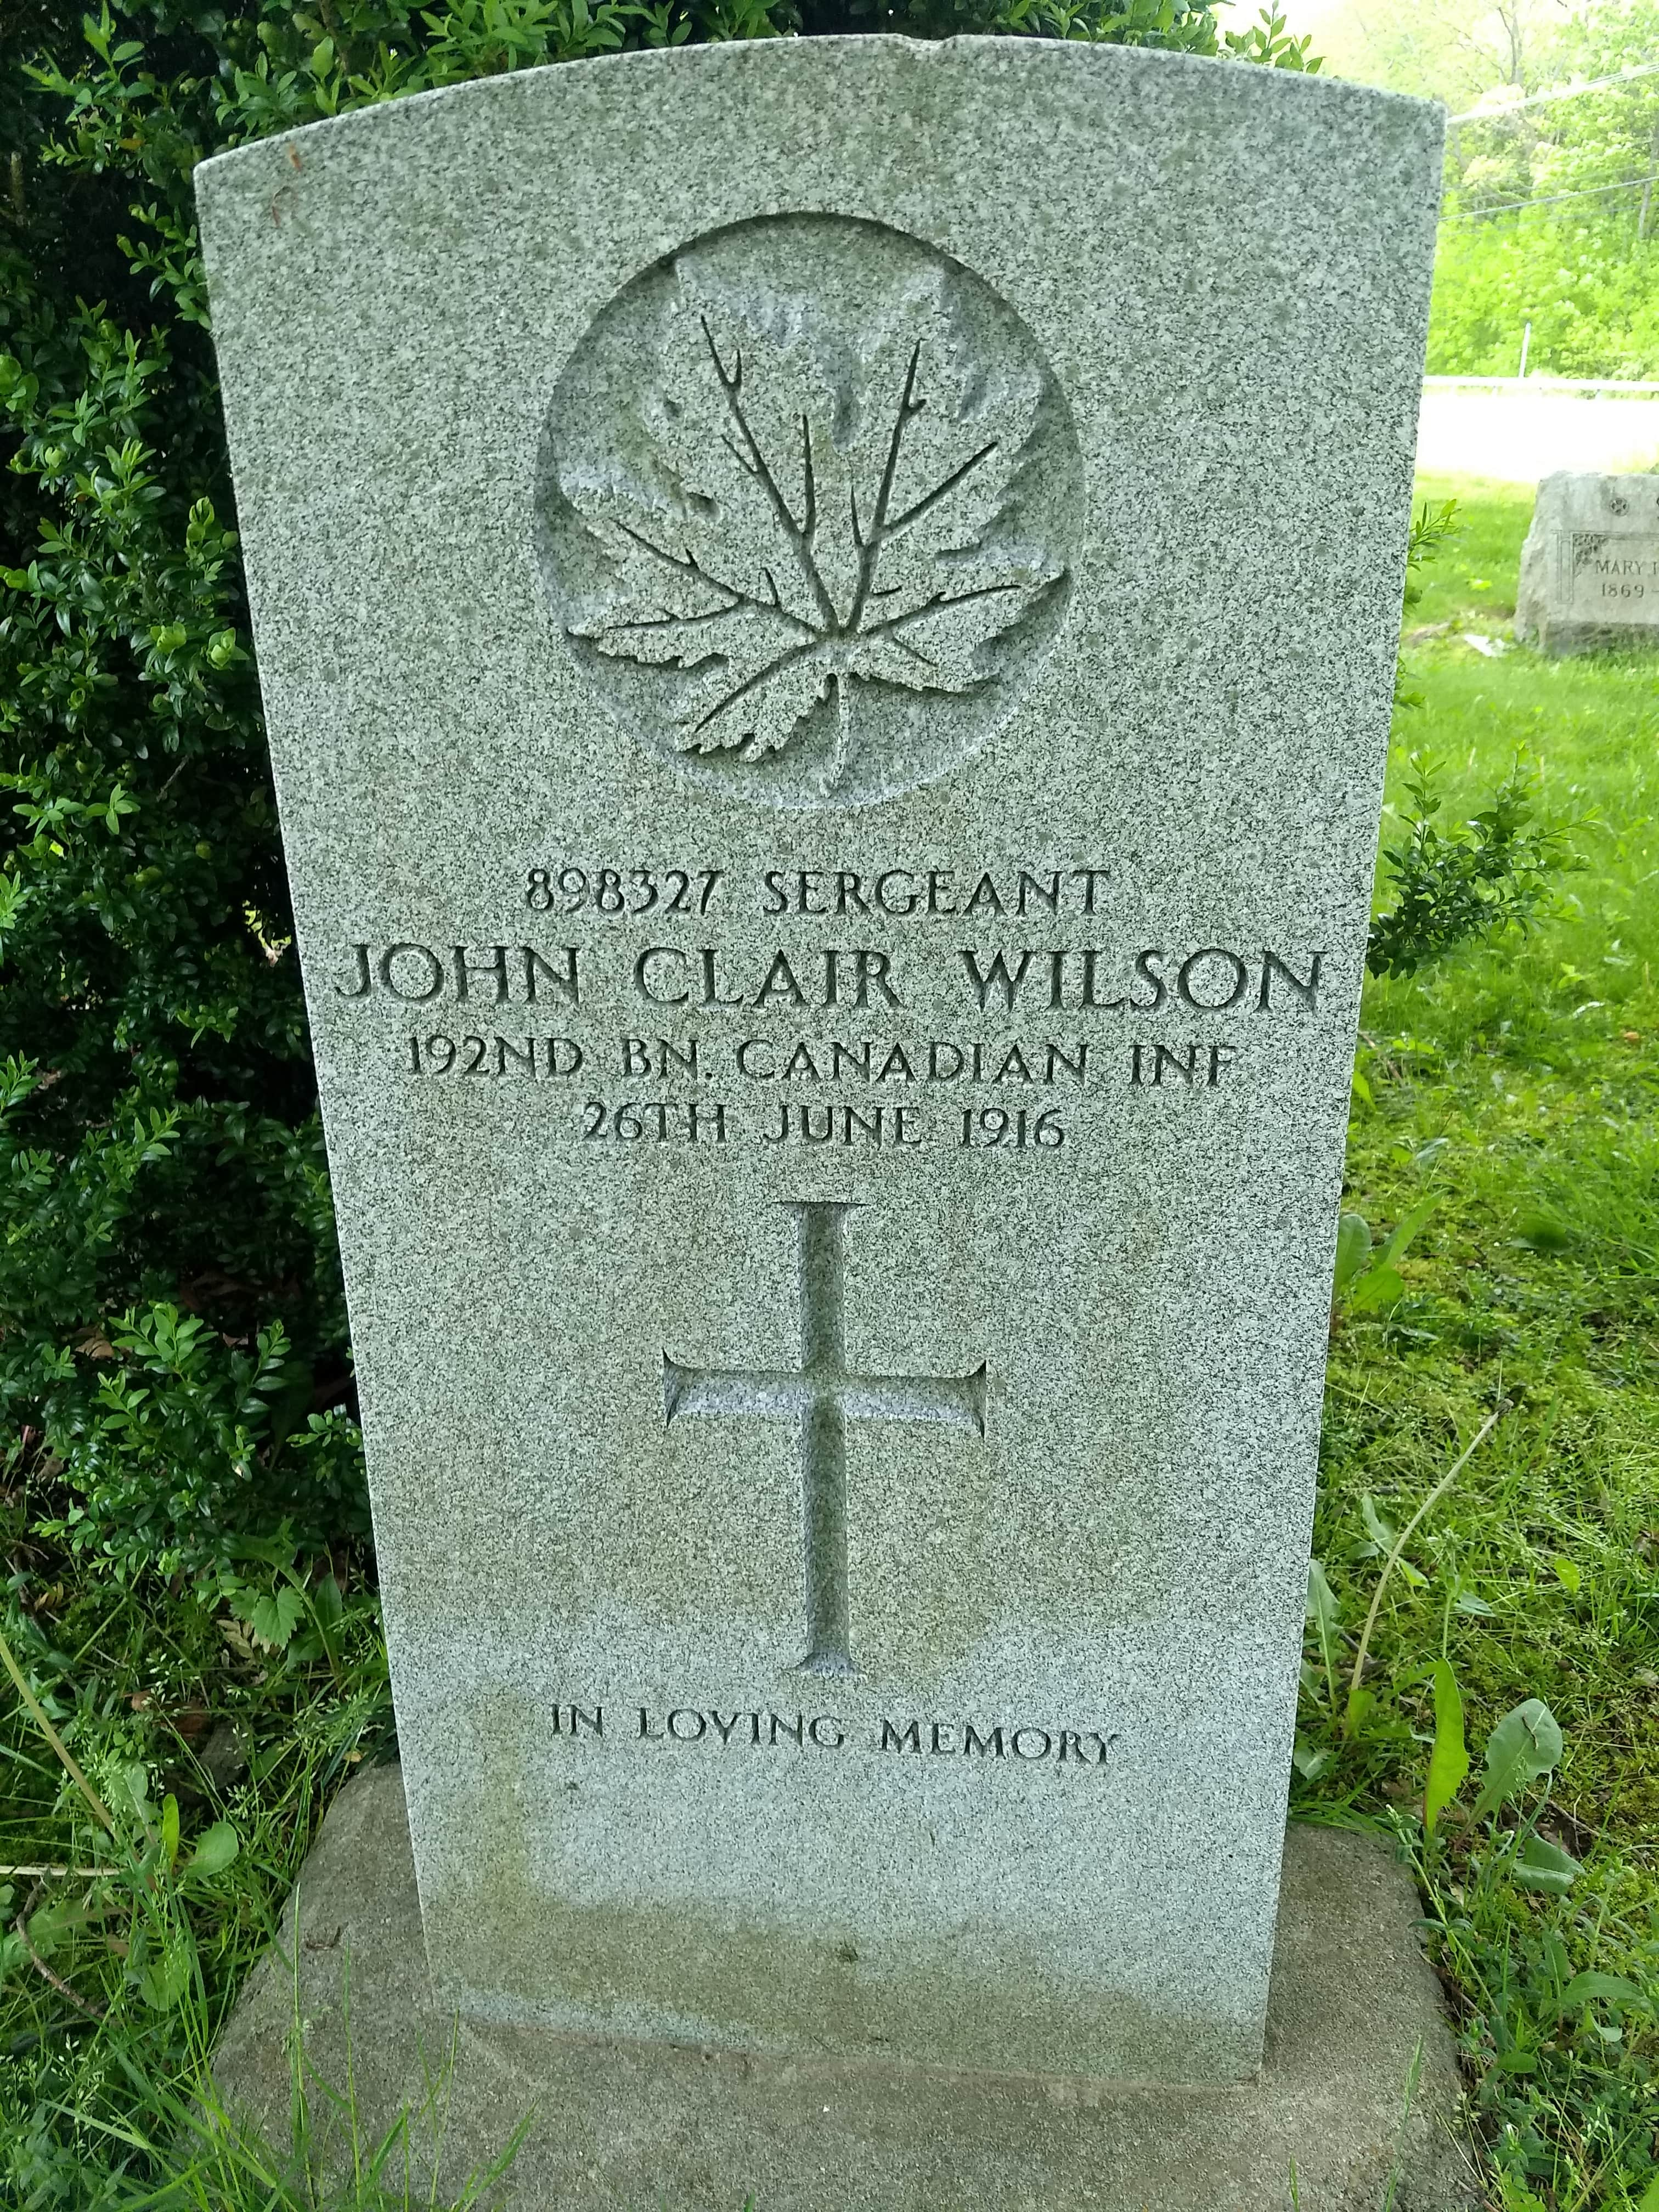 Grave marker– Final resting place of John Clair Wilson.